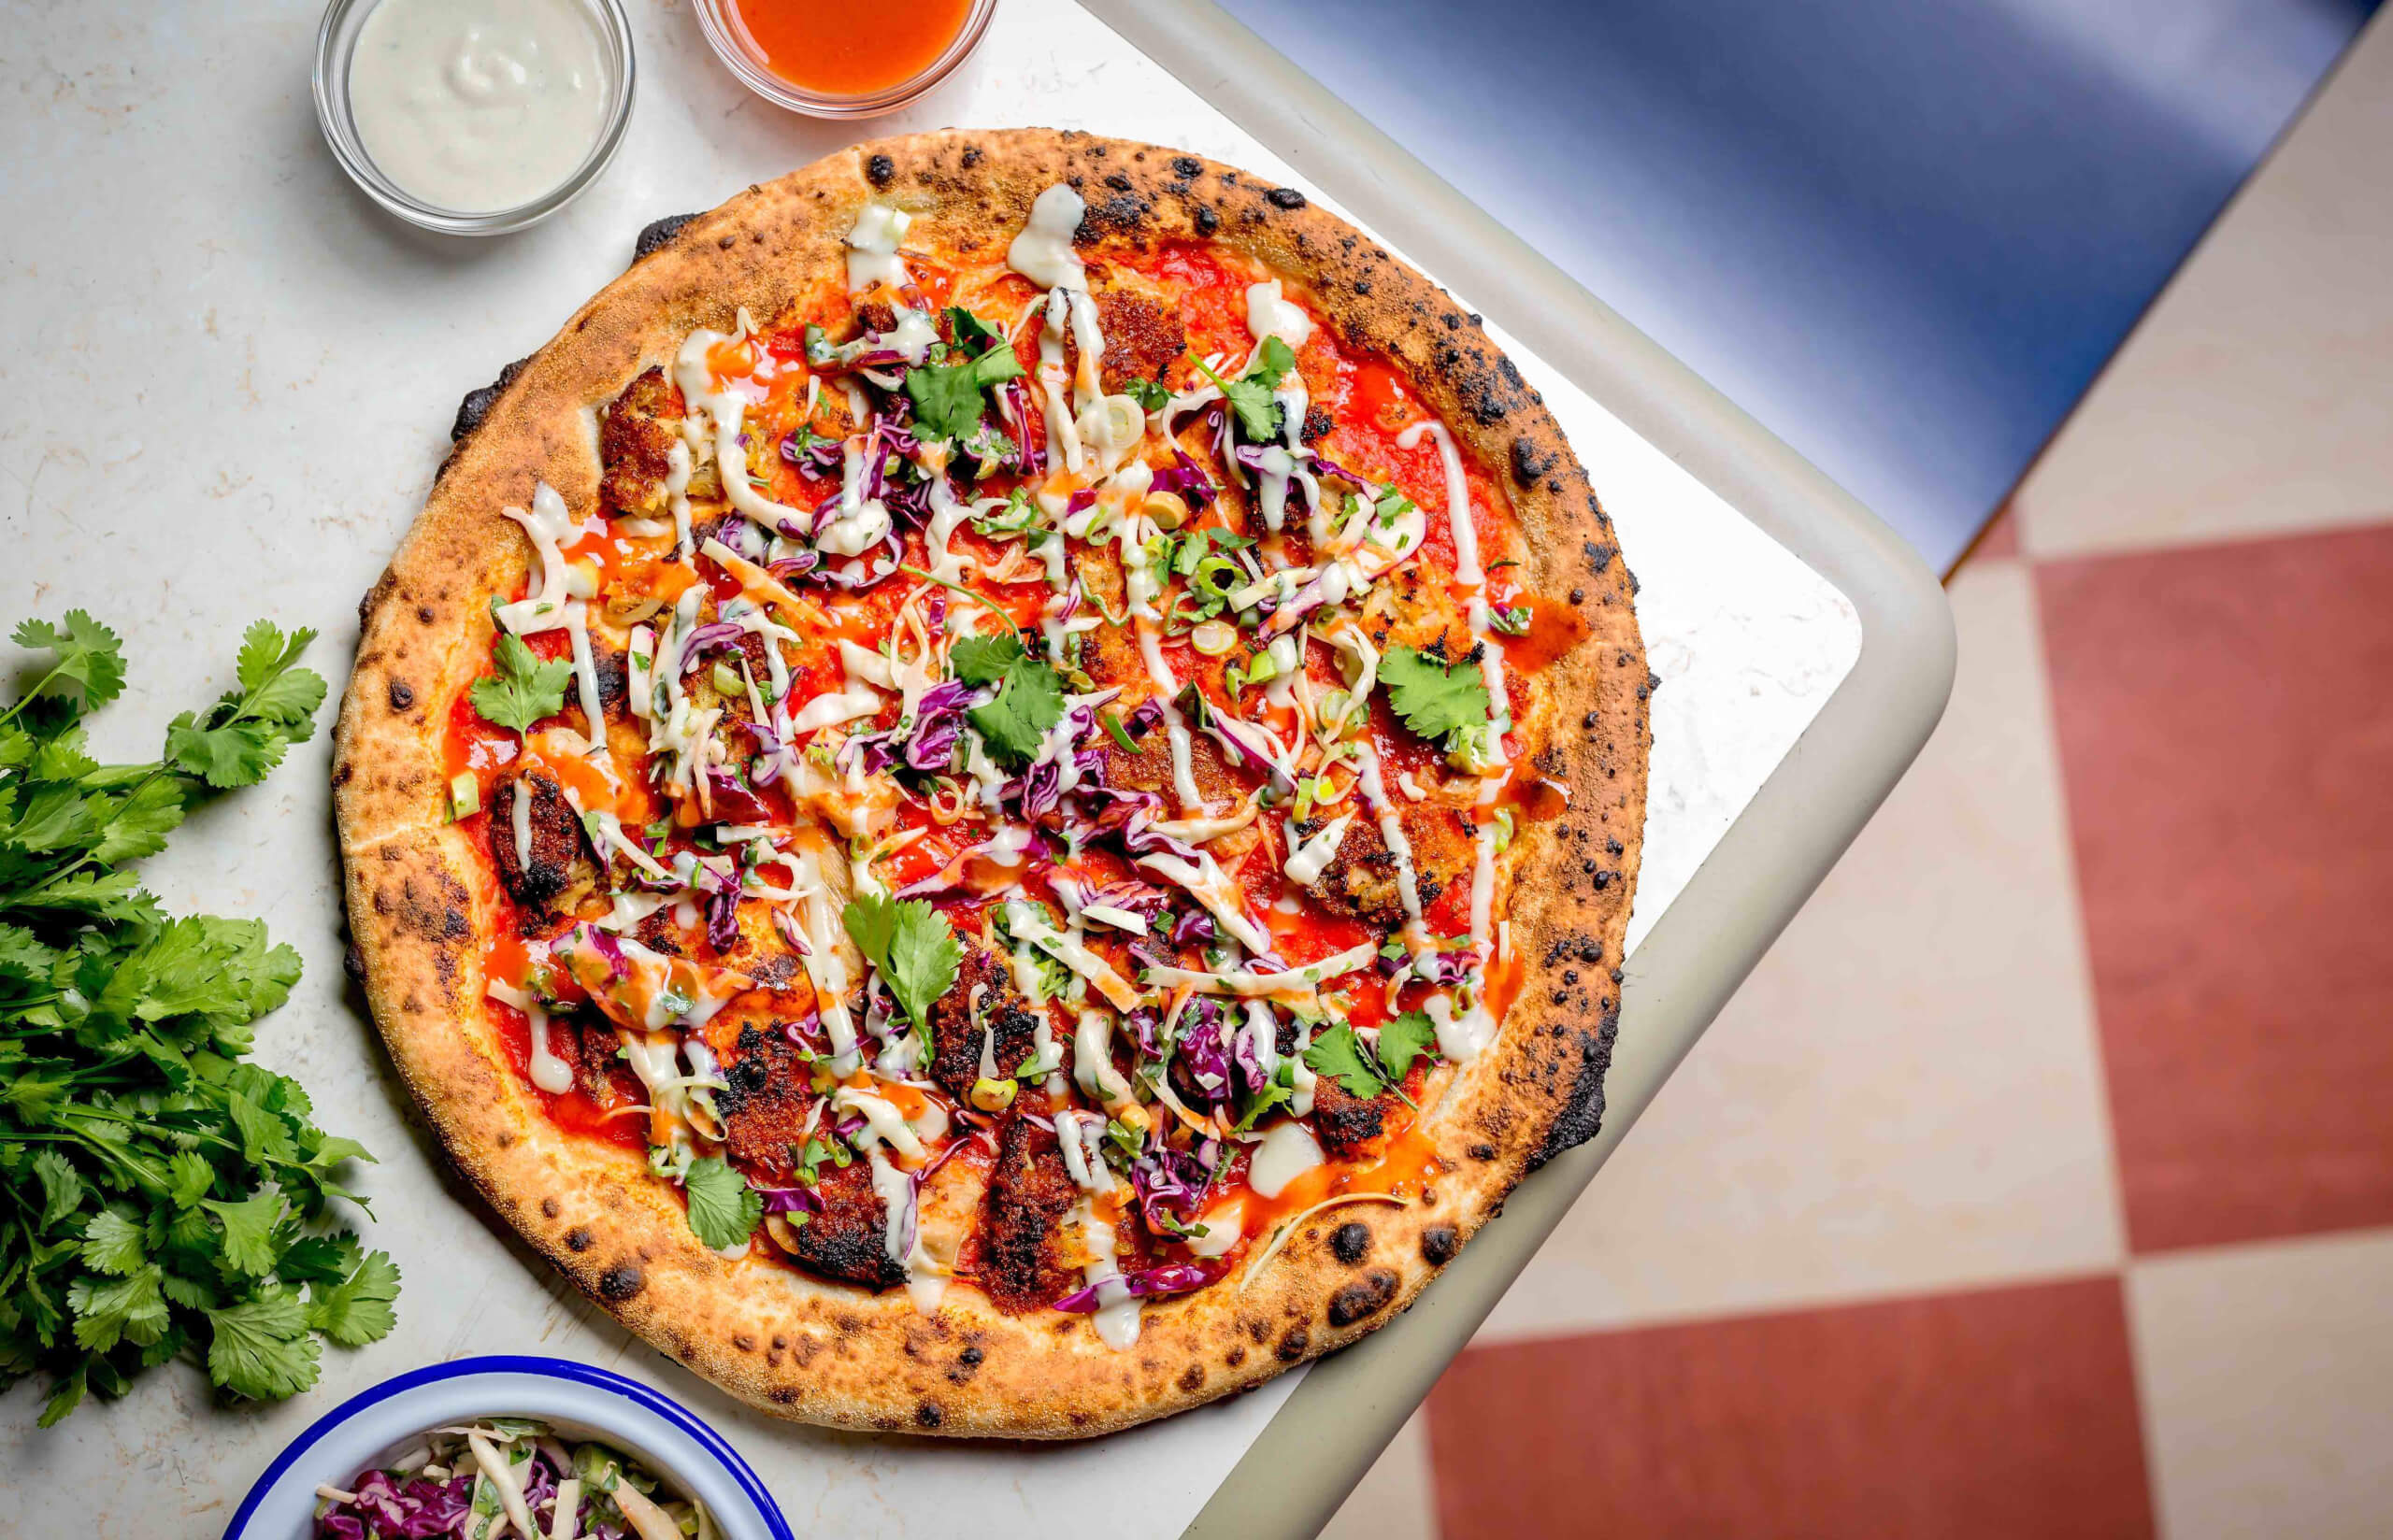 Best Vegan Pizza in London, London's Best Vegan Pizzas, London's Best Vegan Pizza, vegan pizza in london, best vegan pizza in london, vegan pizza london, top vegan pizza in london, where to eat vegan pizza in london, vegan pizza